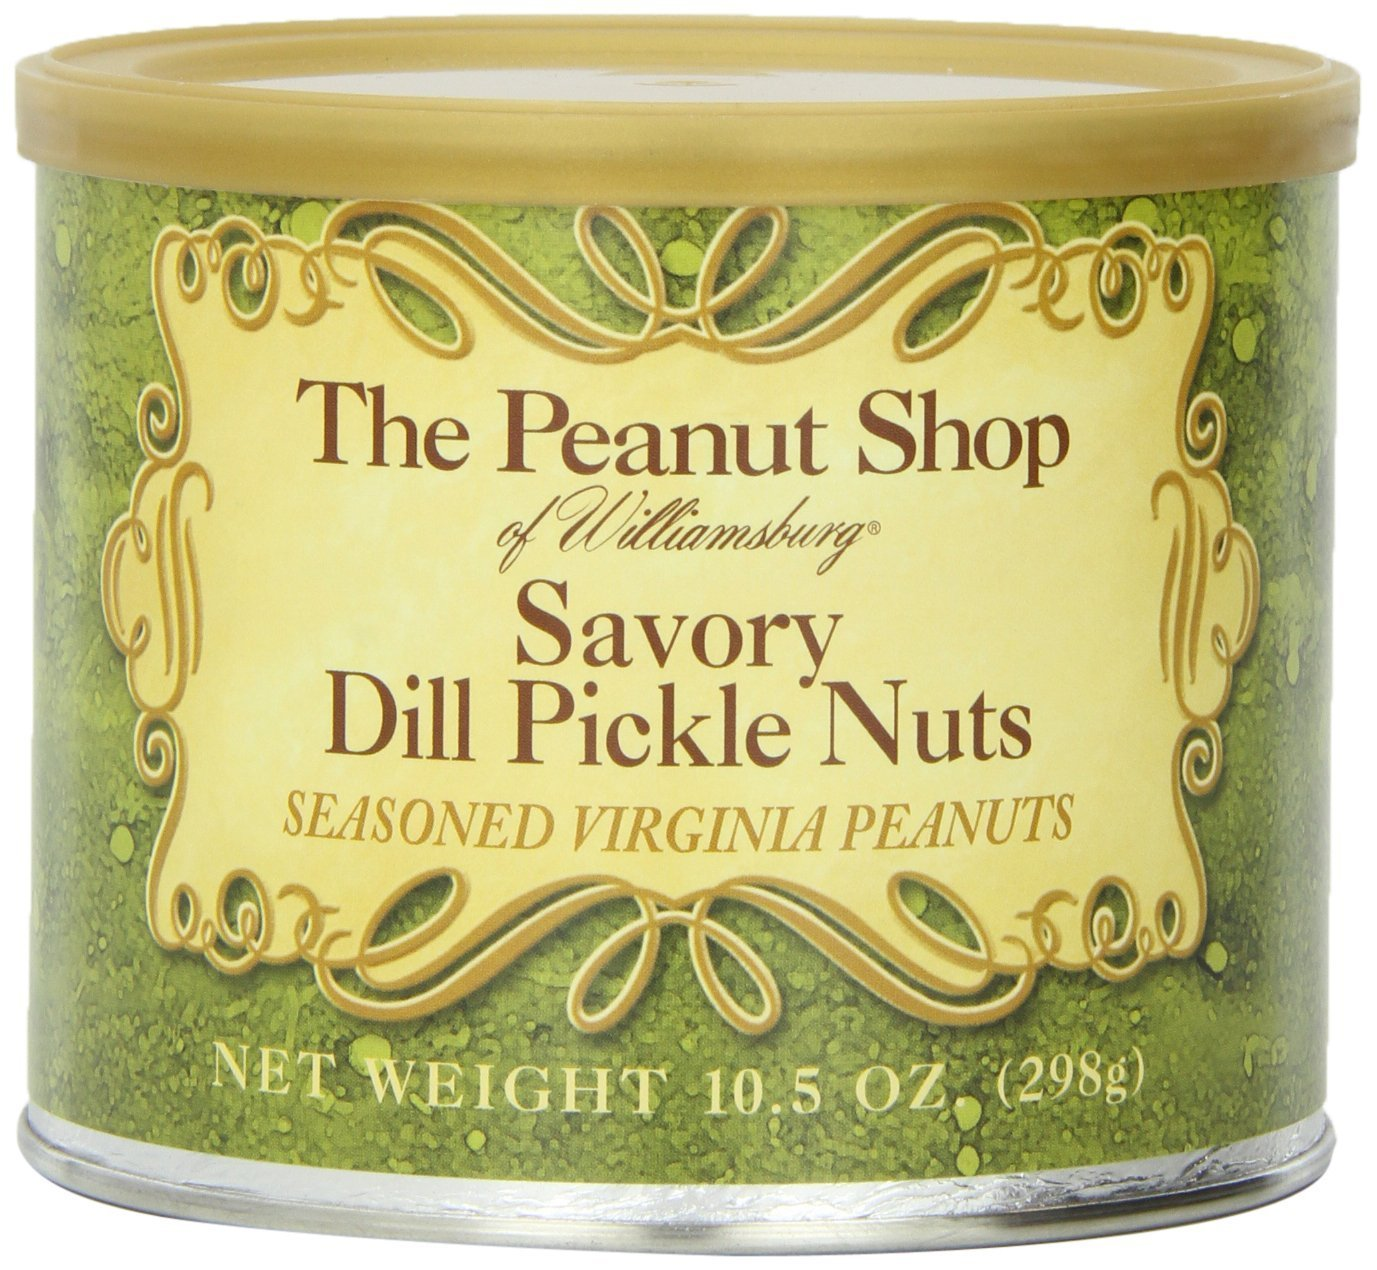 The Peanut Shop of Williamsburg Savory Dill Pickle Peanuts, 10.5 oz. - 3 PACK!